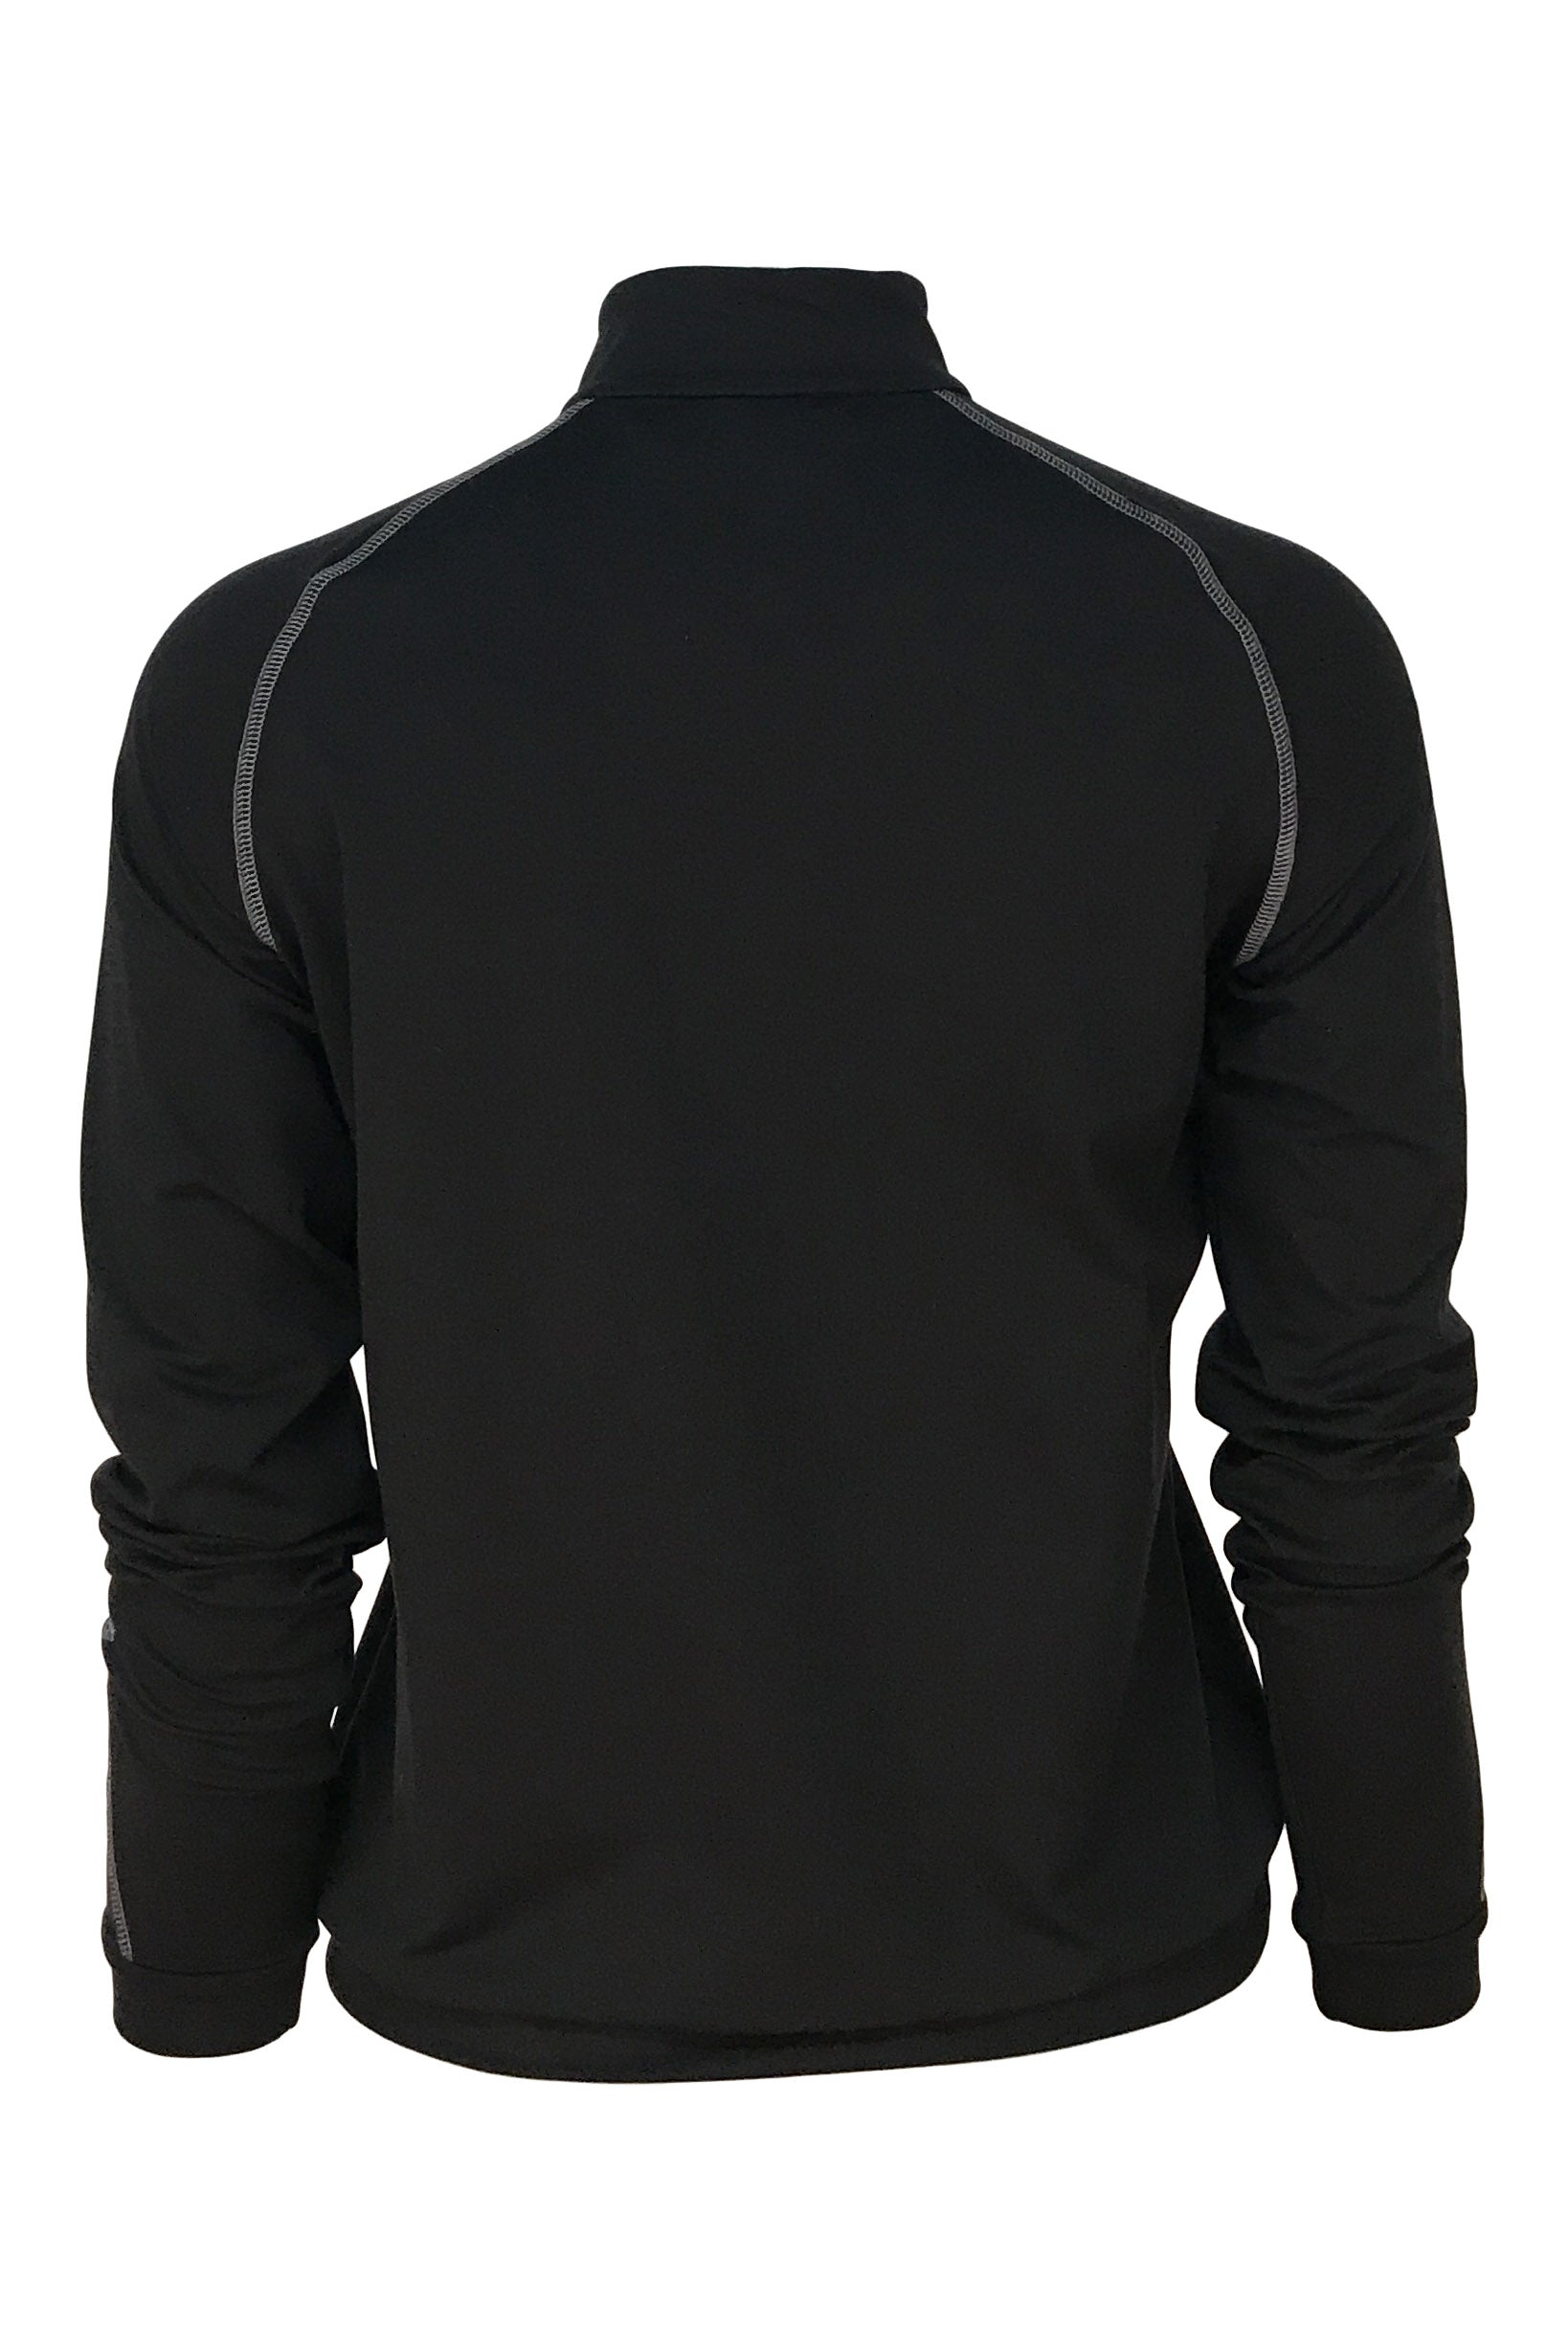 FILLMORE QUARTER ZIP -  BLACK